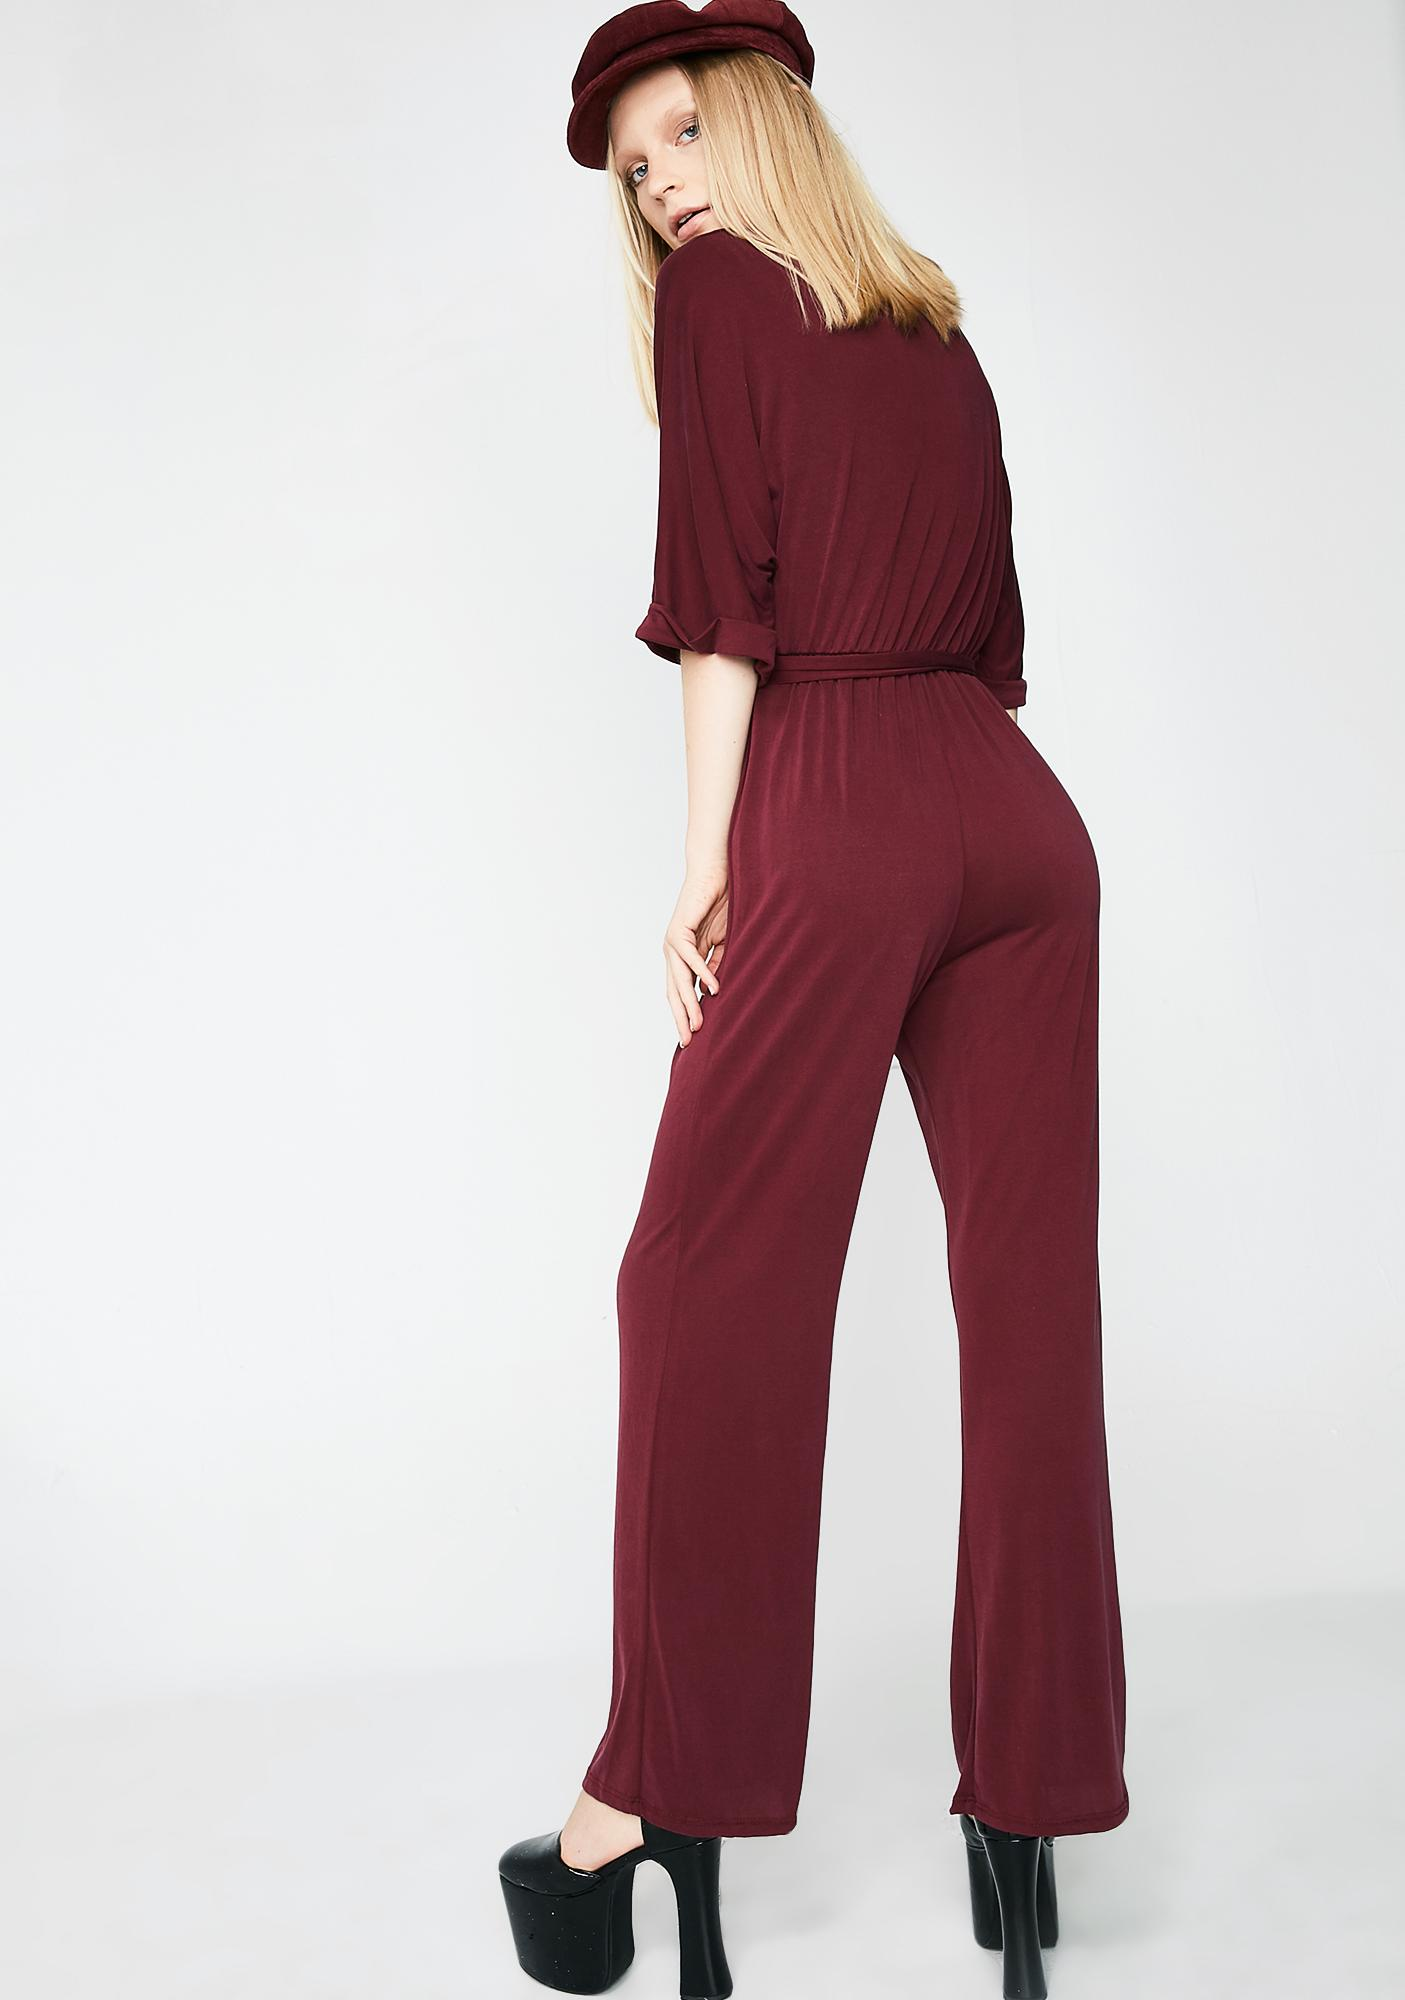 Call Me Later Jumpsuit